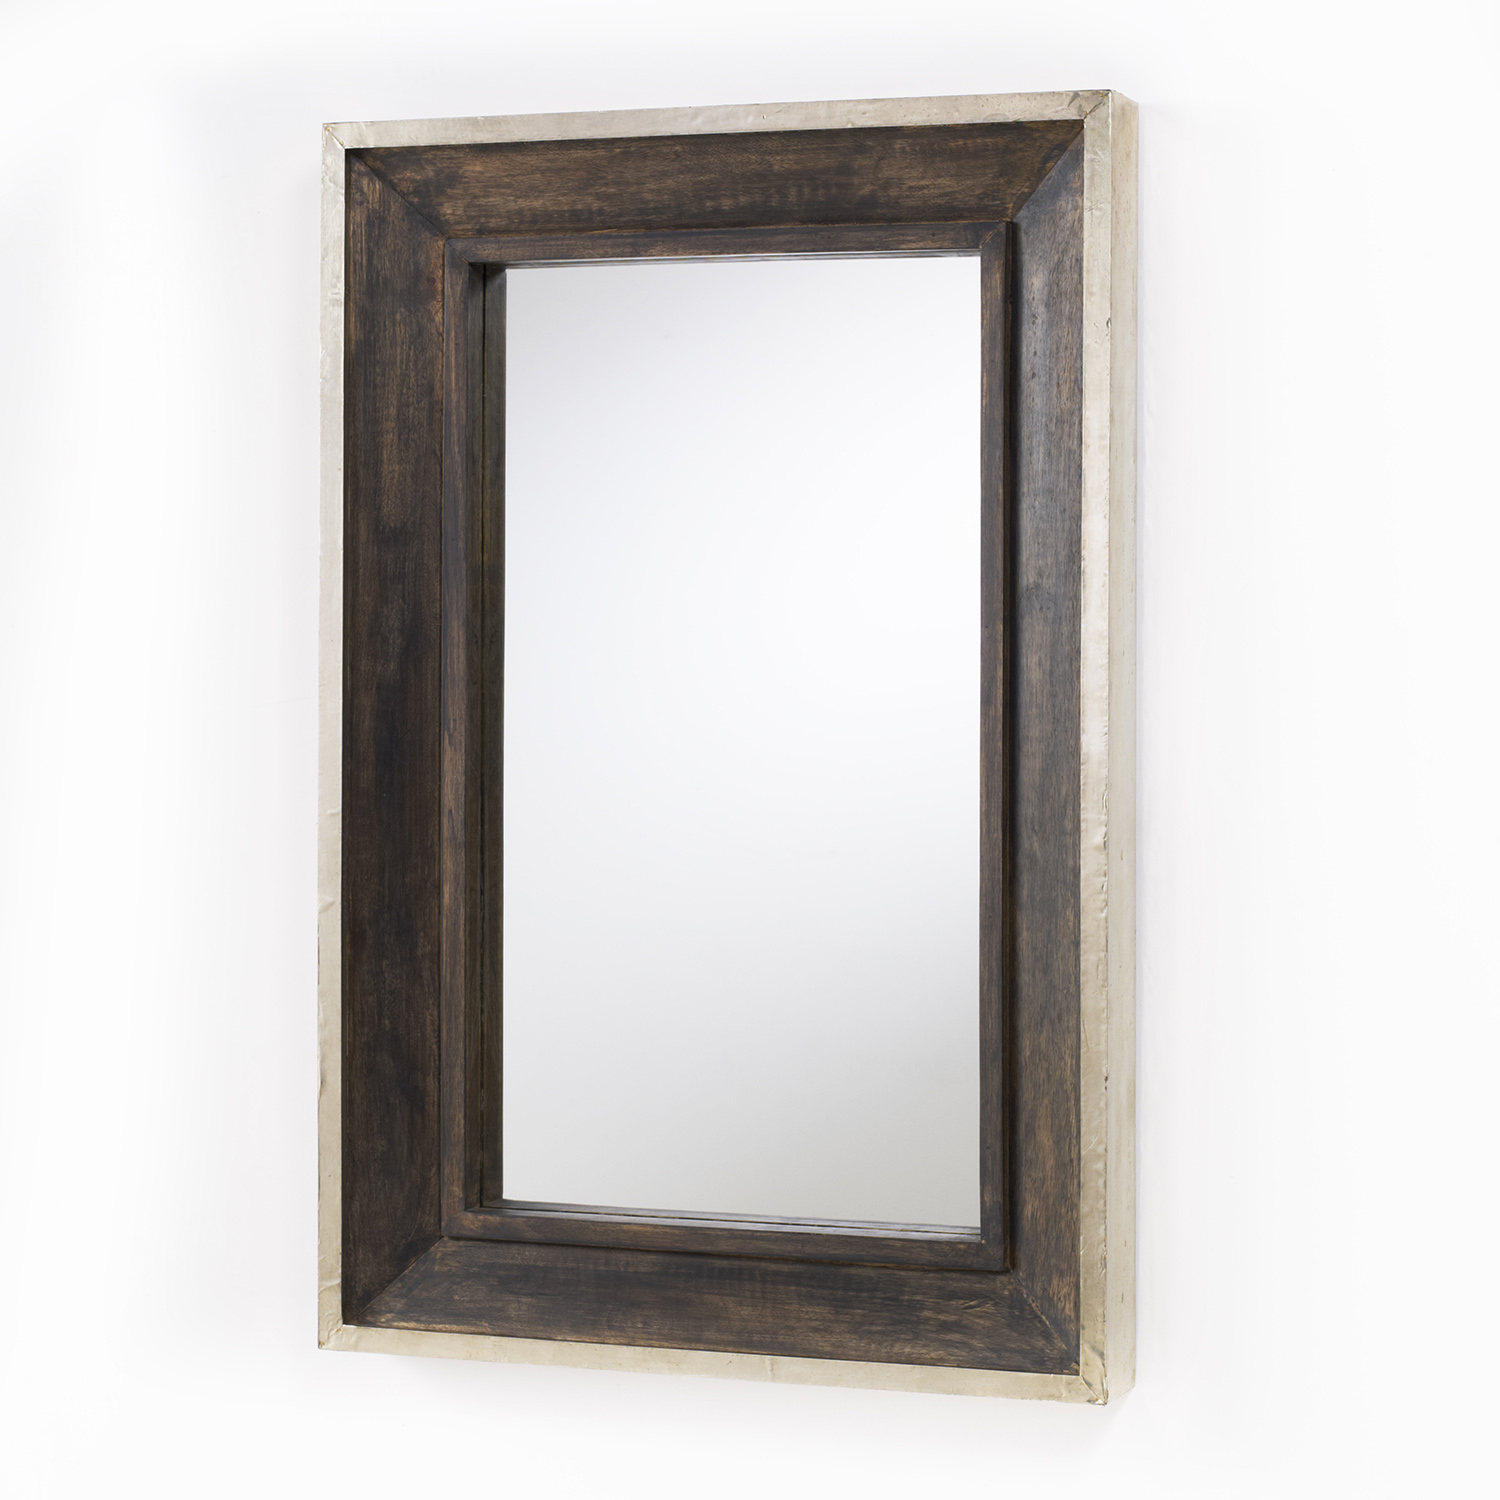 Mirrors | Capital Lighting pertaining to Jarrod Sunburst Accent Mirrors (Image 19 of 30)